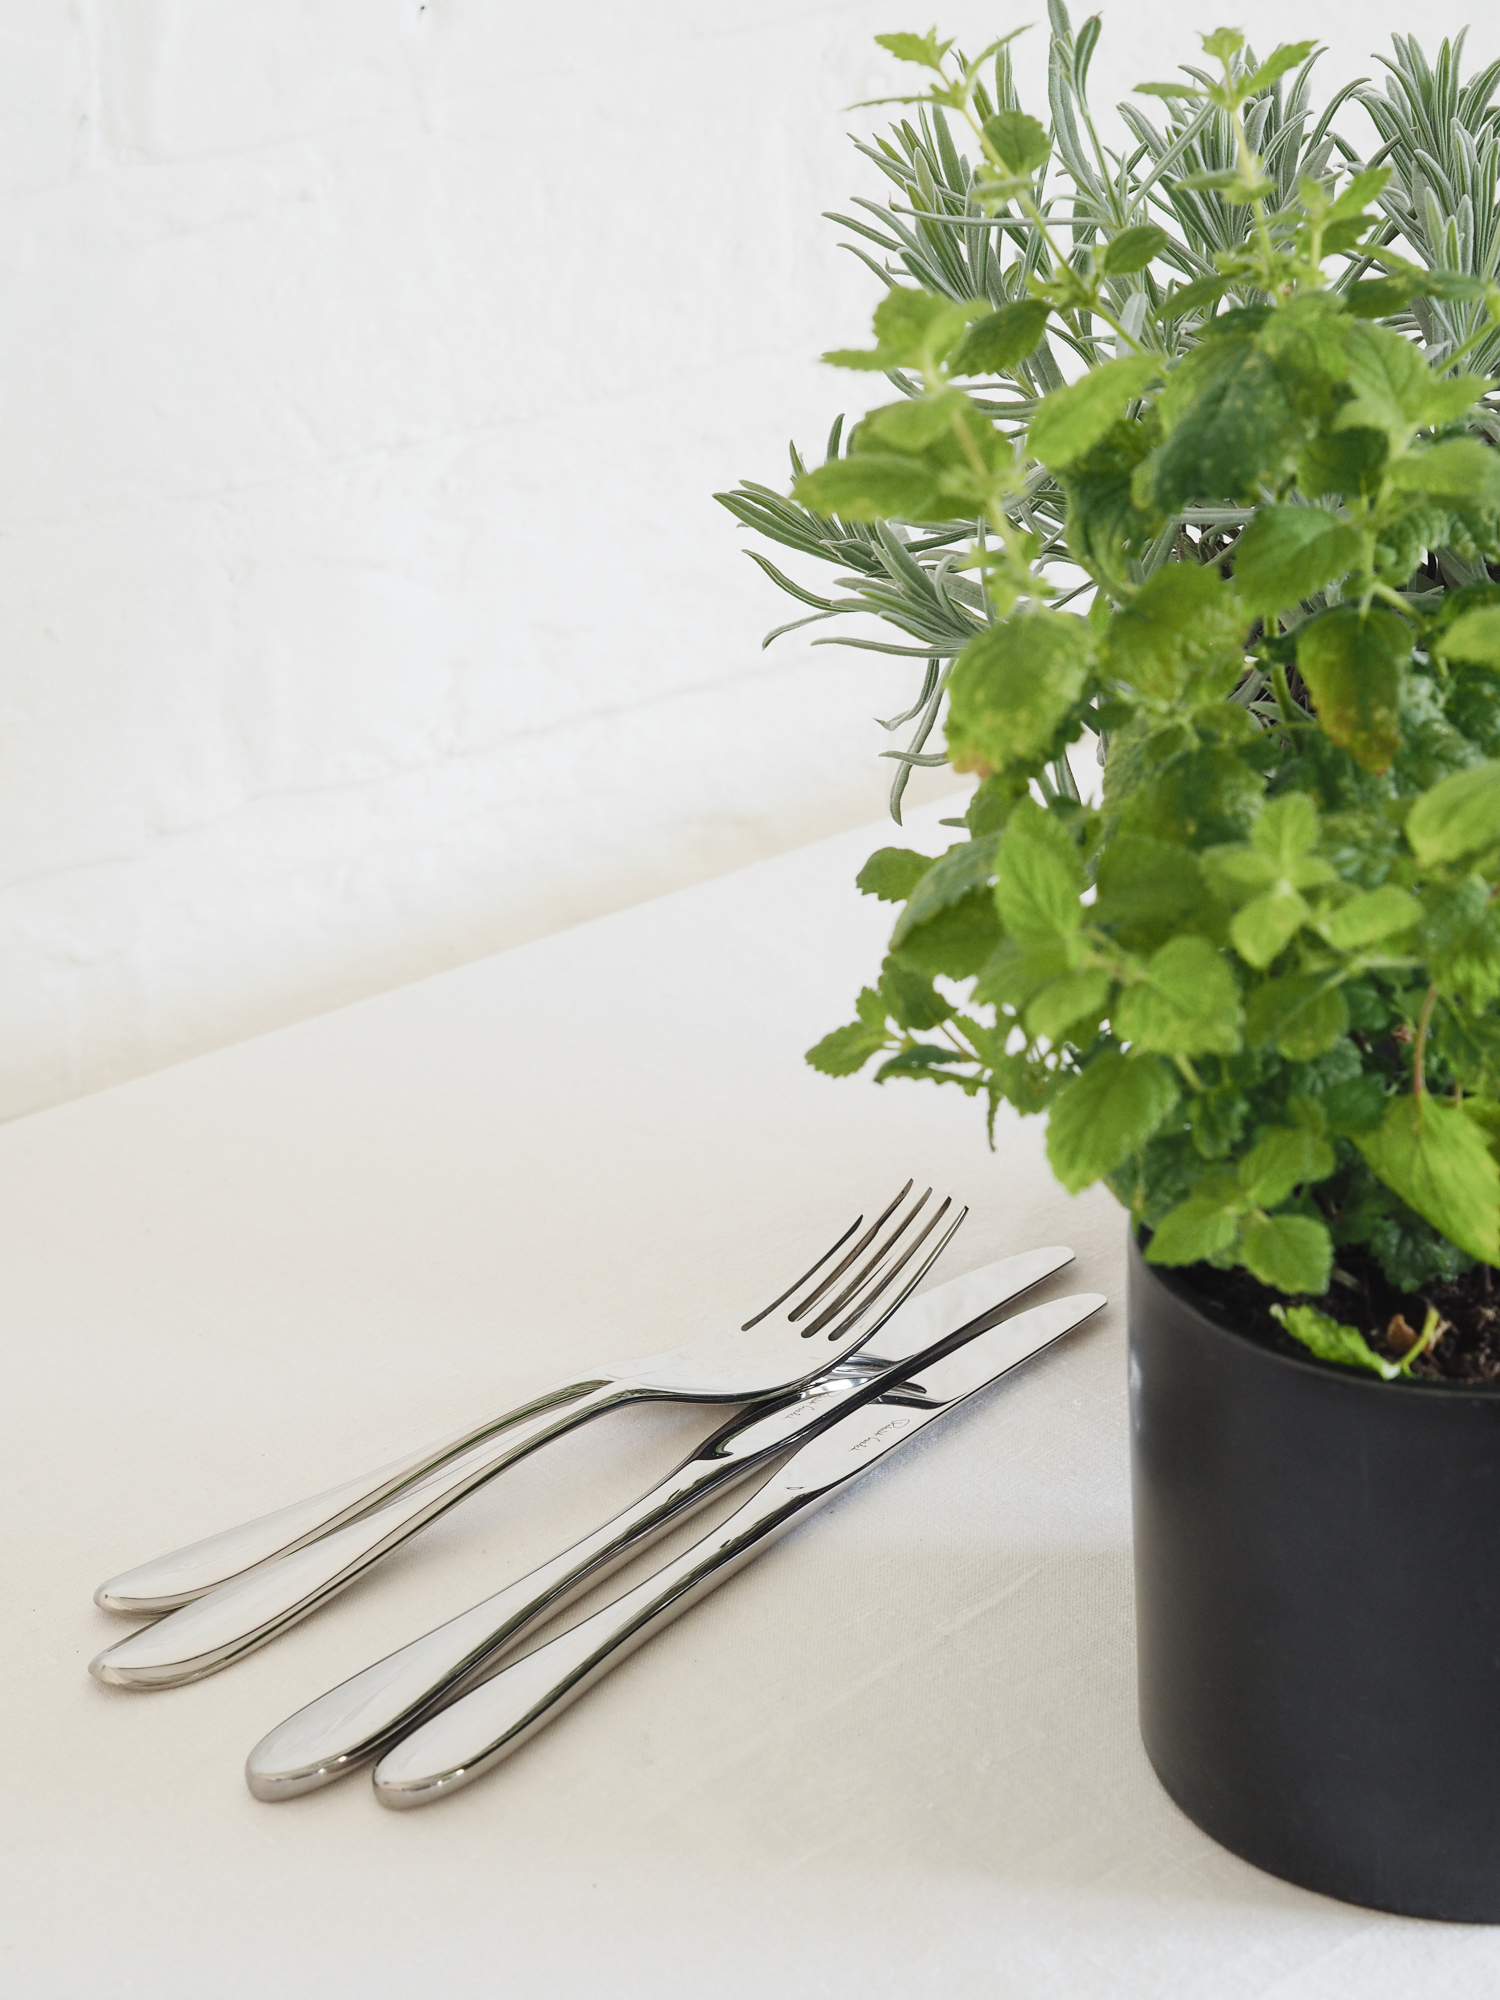 Bourton cutlery collection by Robert Welch | Design Hunter